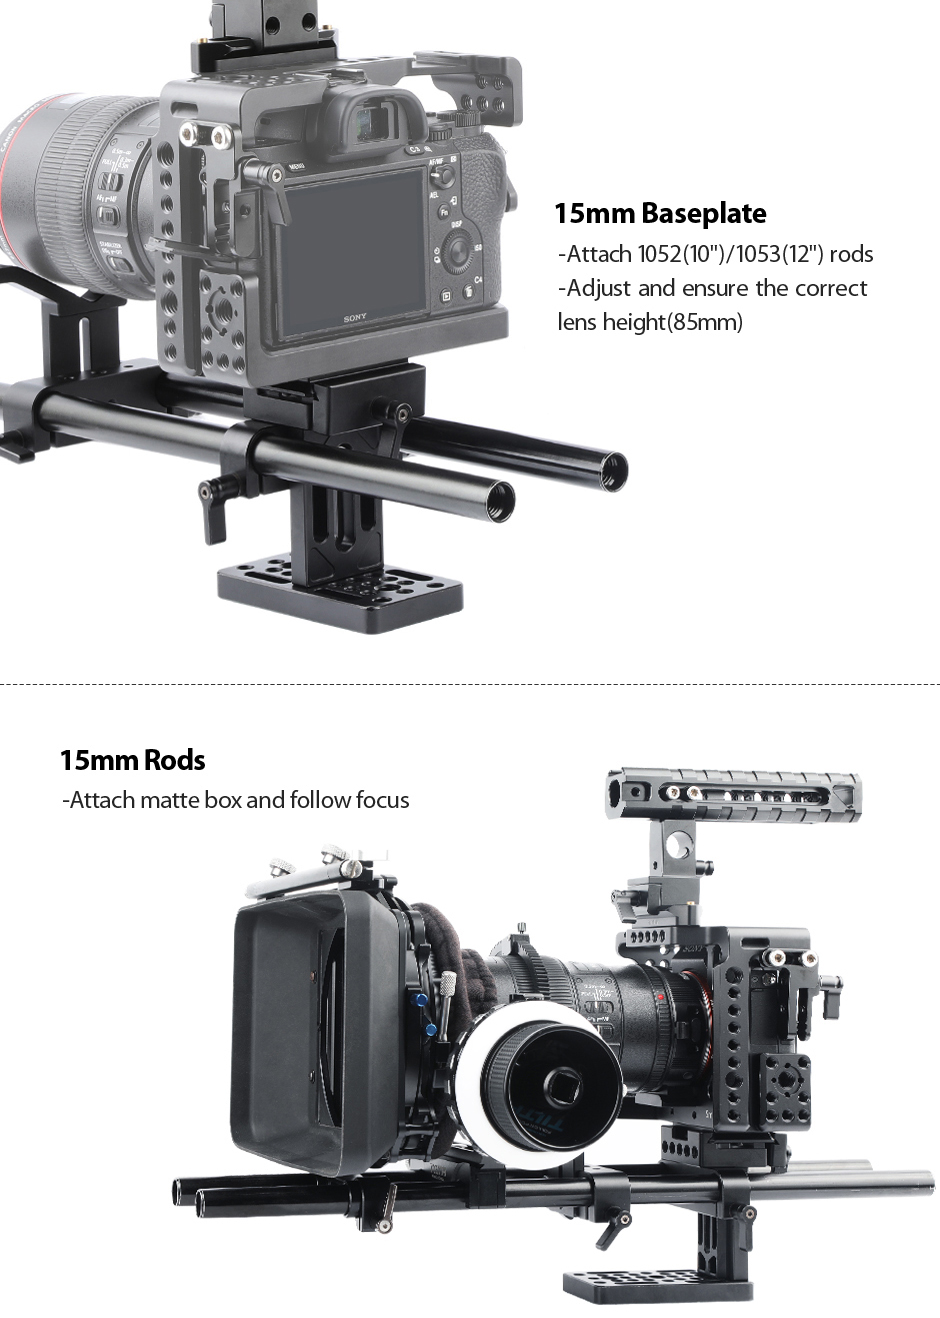 smallrig-sony-a7ii-a7rii-a7sii-accessory-kit-201.jpg